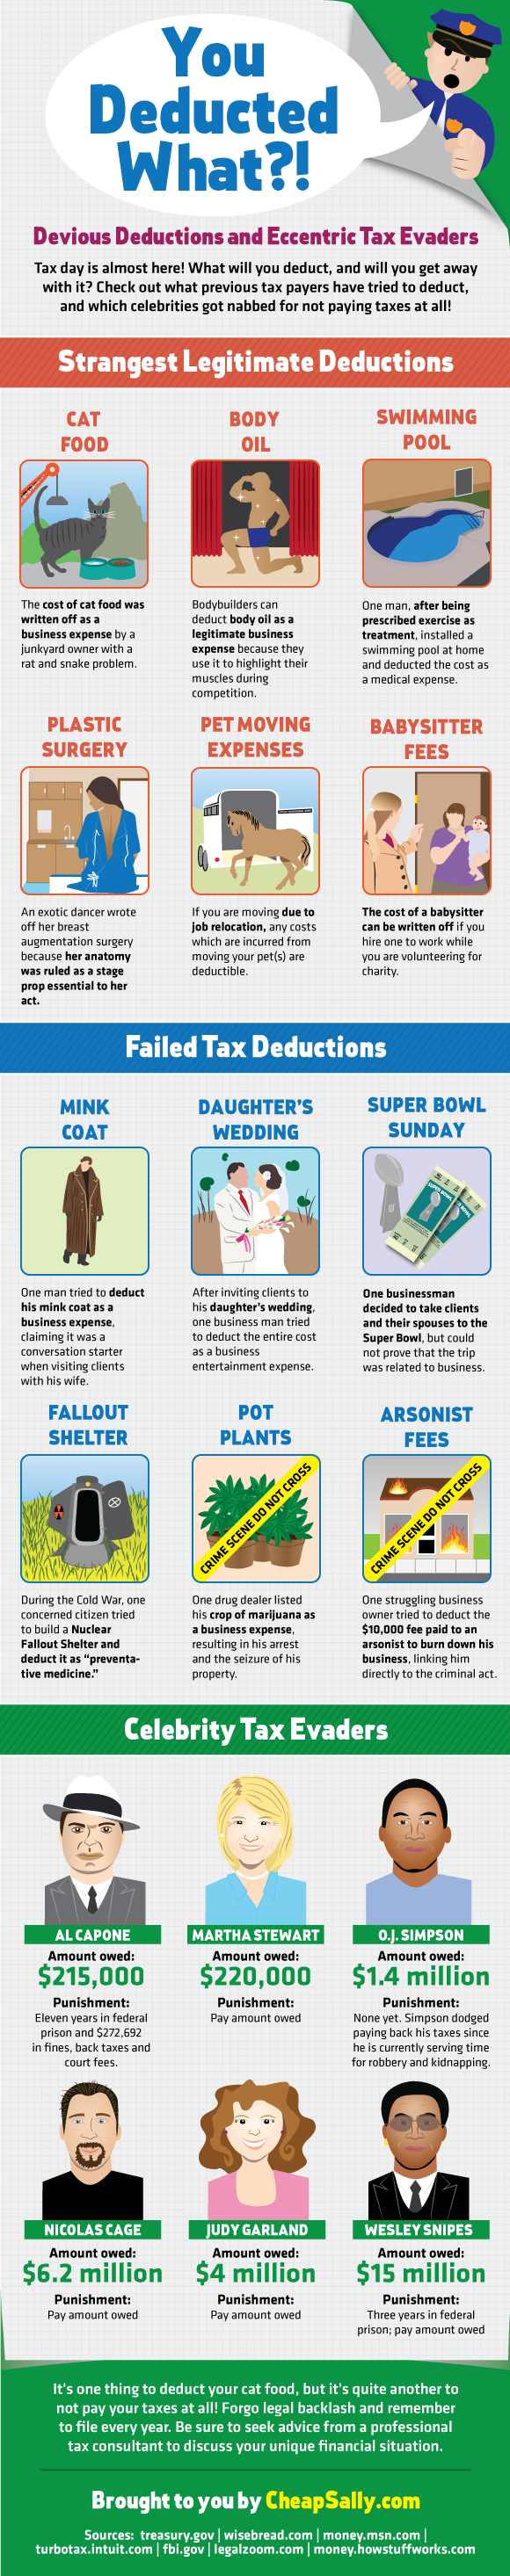 2012-03-26-DeductionsInfographic.png